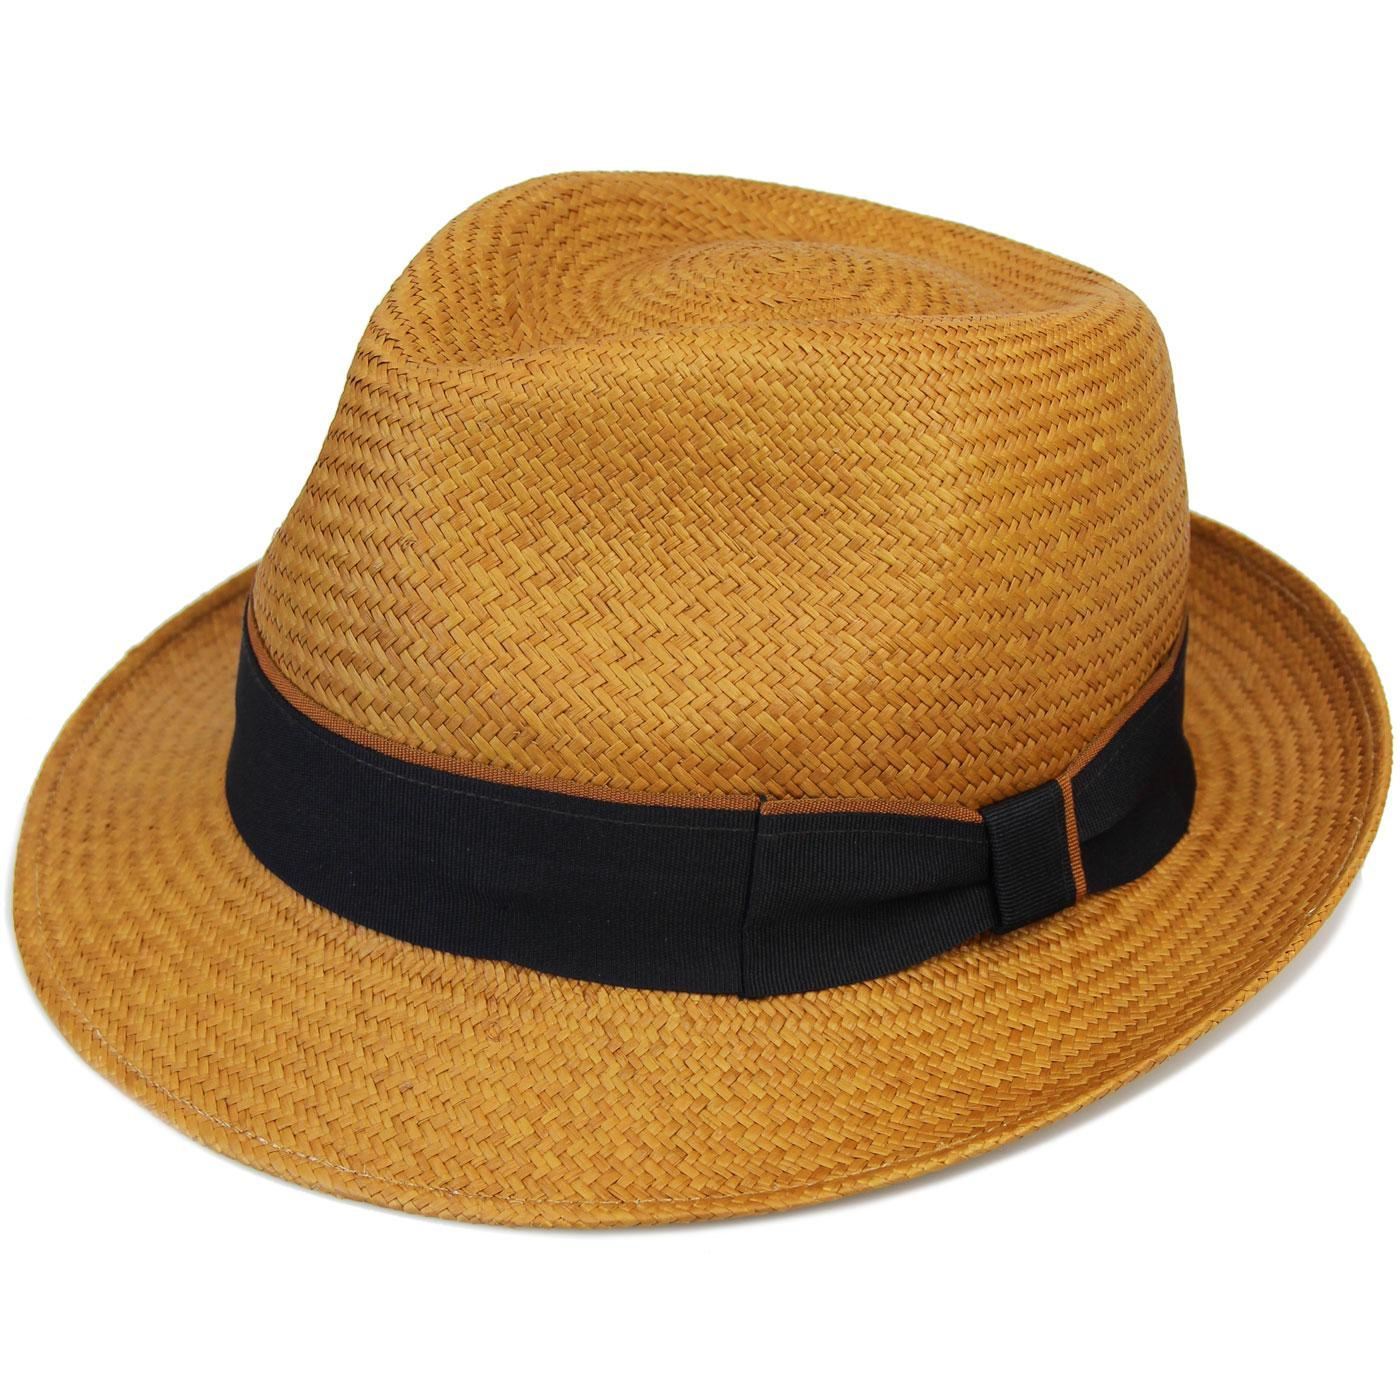 FAILSWORTH Retro Mod Contrast Stripe Panama Hat M